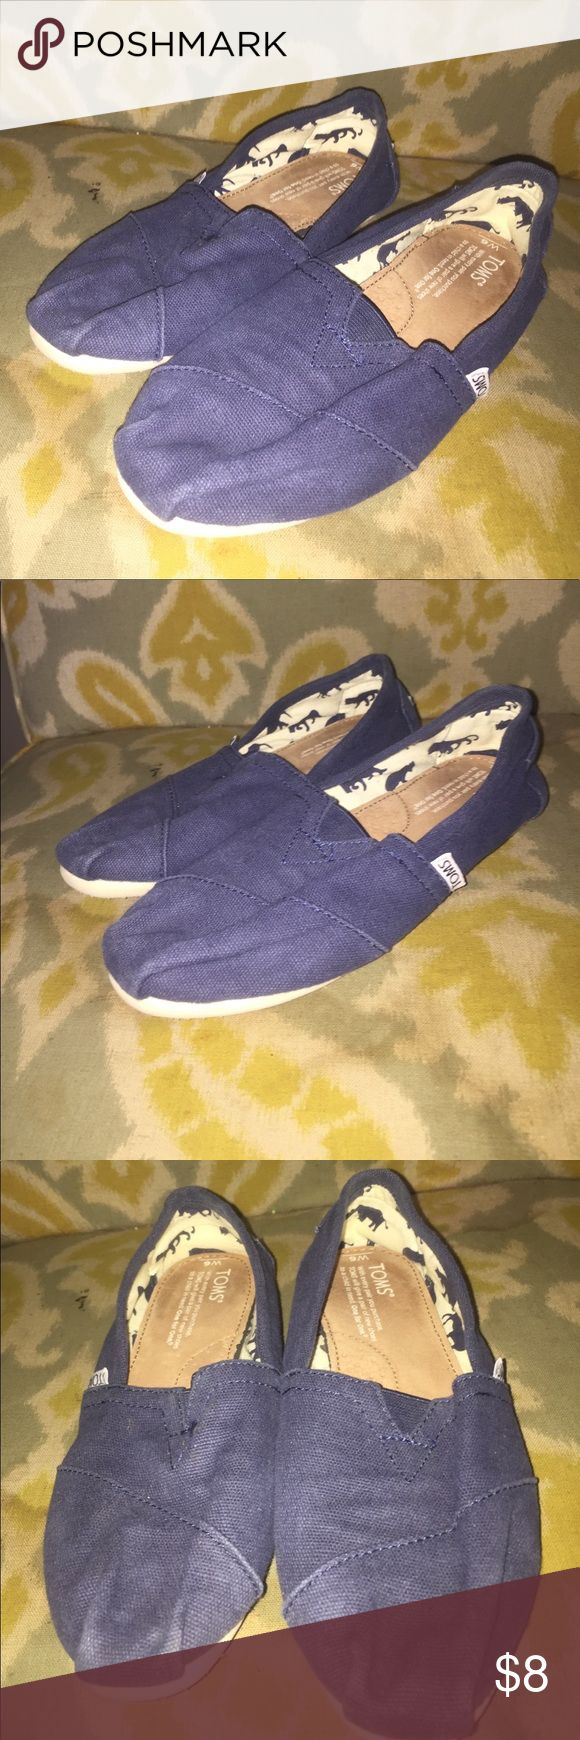 Ladies Toms flats shoes Blue Sz 6 In great preowned shape. Size 6 ladies. Toms Shoes Flats & Loafers